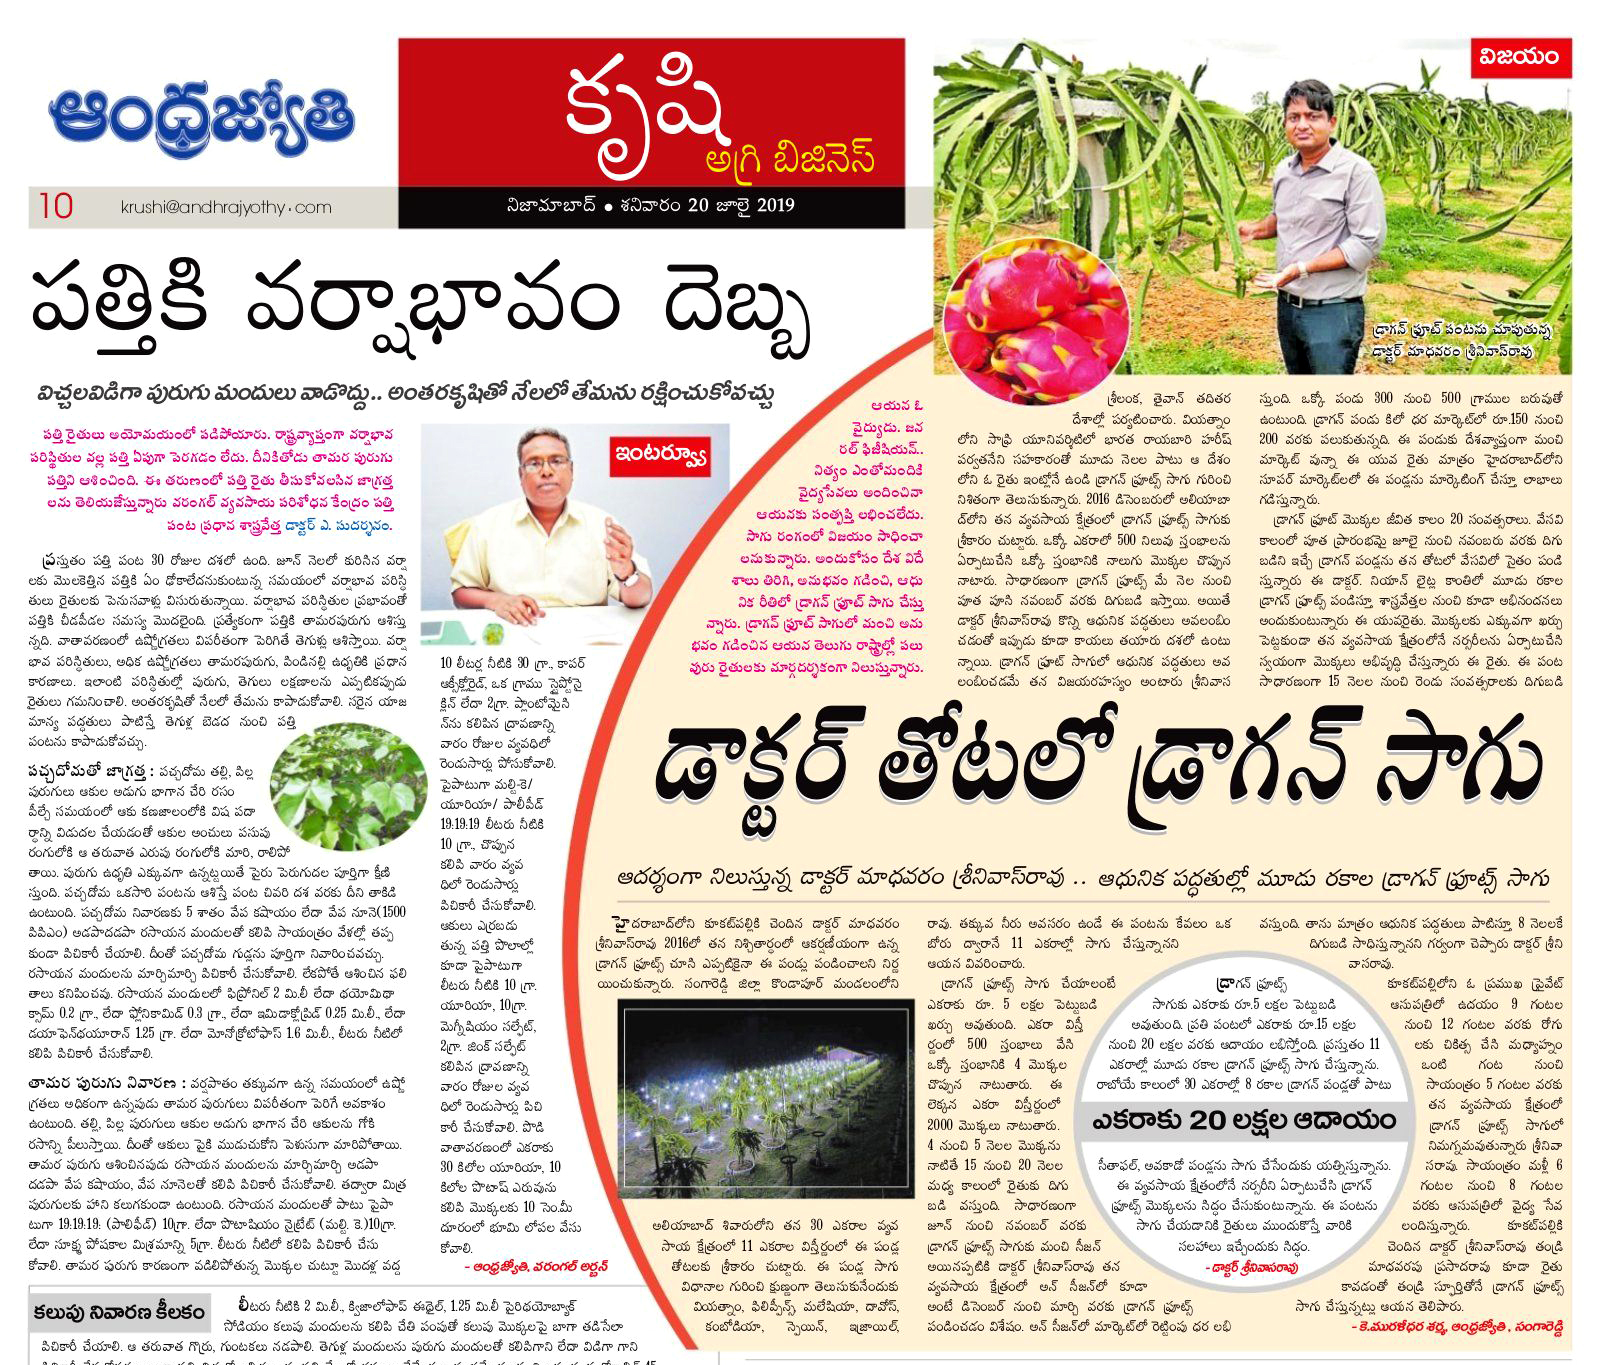 Our largest dragon-fruit farm story printed one of most popular Andhrajyothy newspaper 20-07-2019